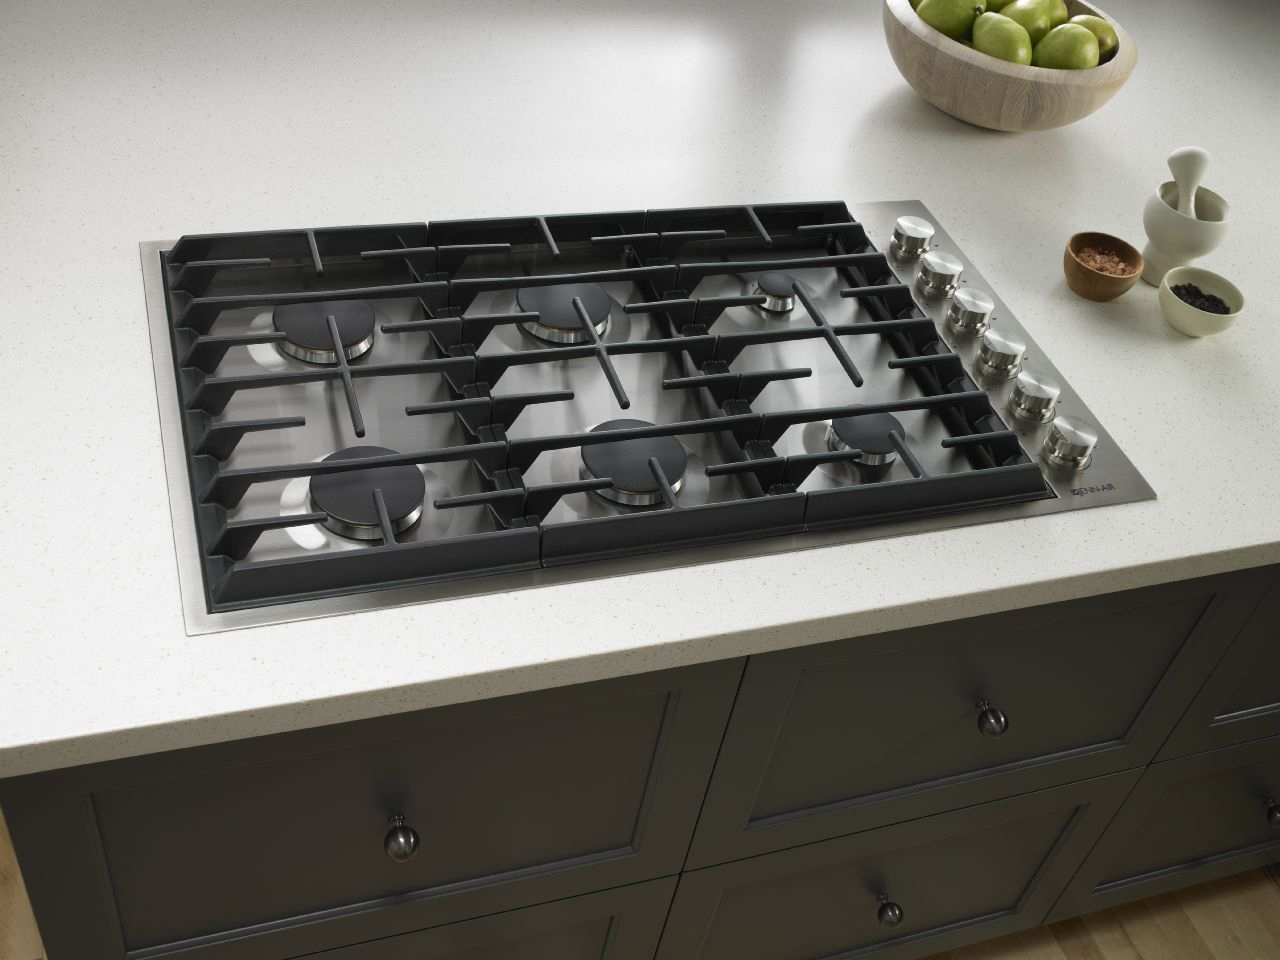 Jenn air stainless steel gas grill - Main Image 1